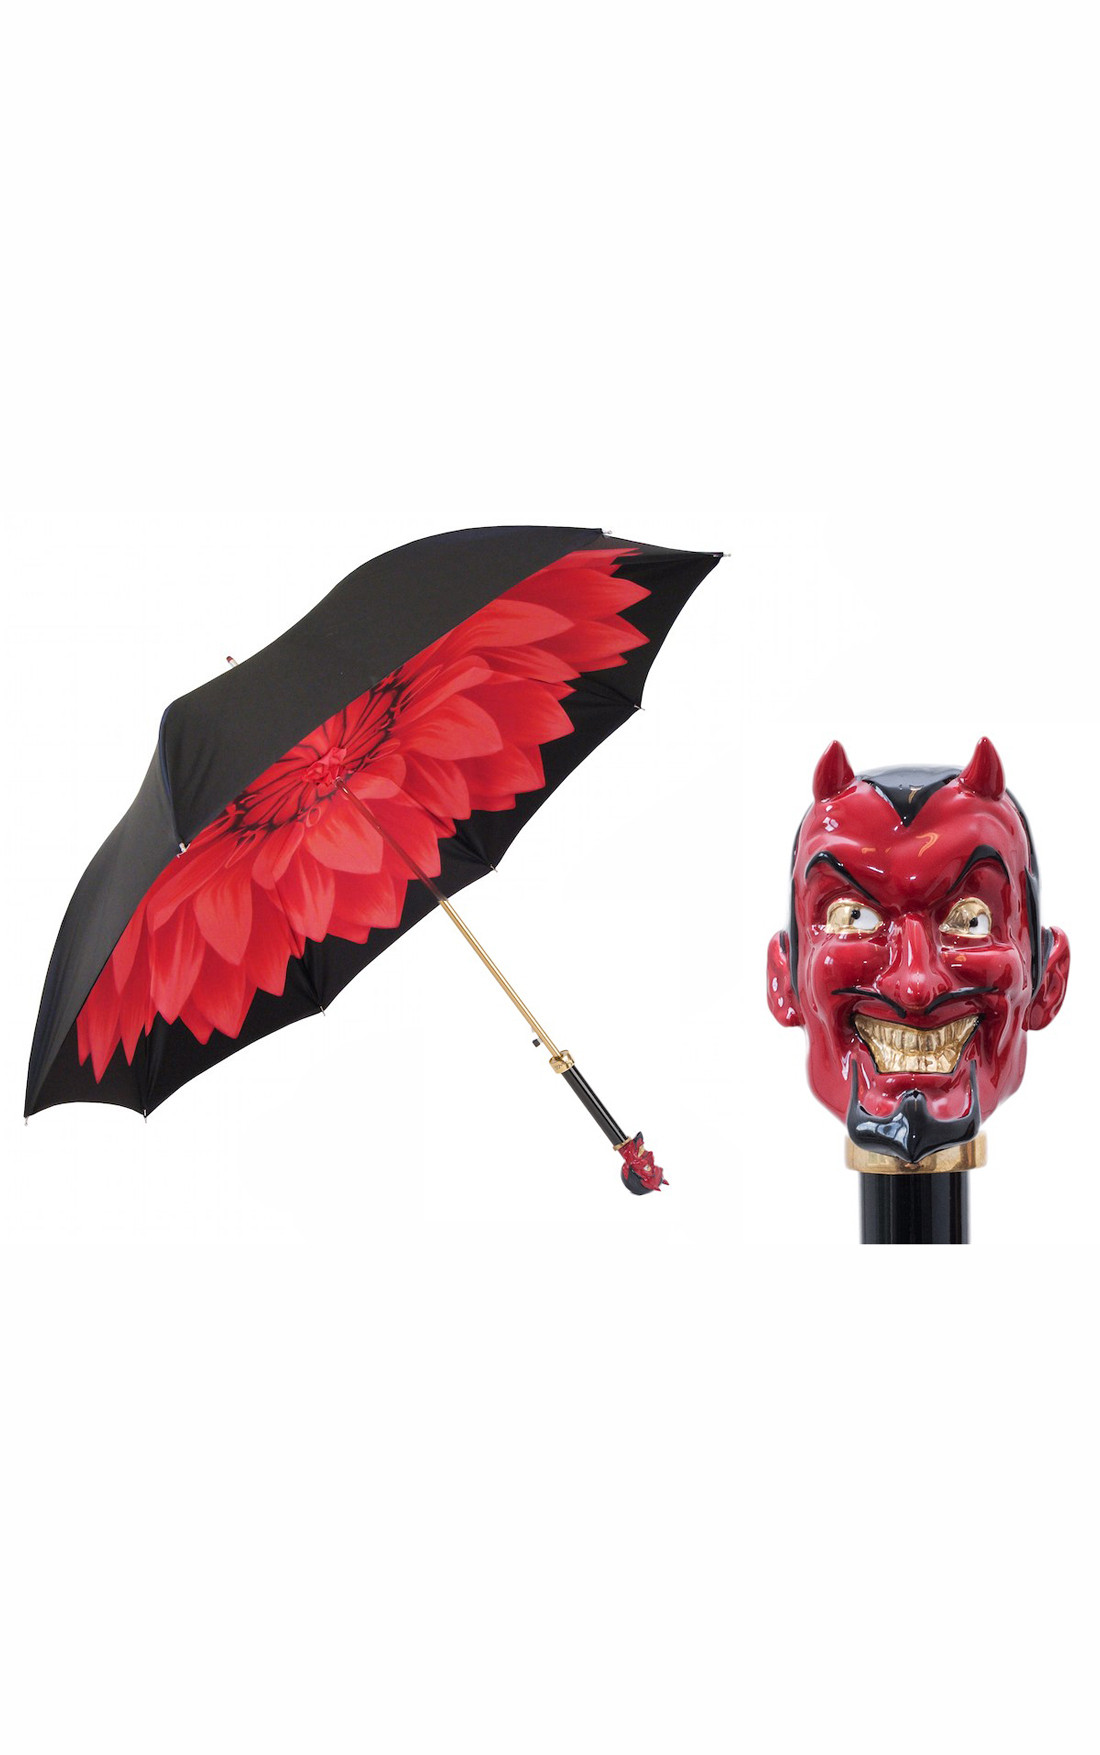 Pasotti - Black Double Canopy Umbrella with Red Lucifer Handle (189-21273/5-K77-LUCIFER-ROSSO)